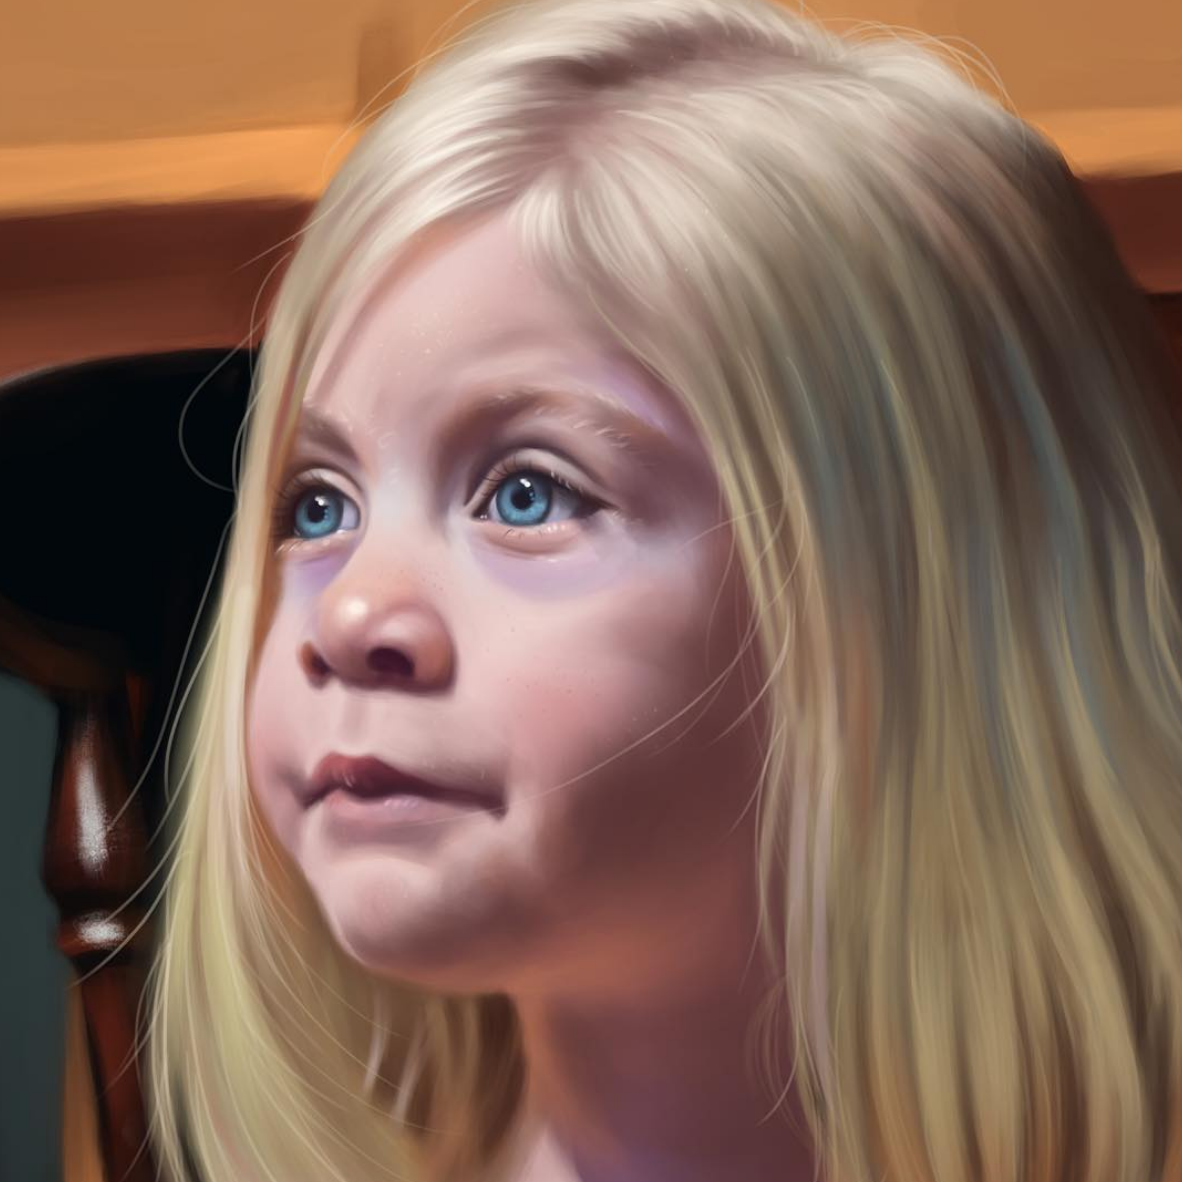 Above image; My 'Essentials of Realism' Digital colour portrait.    This was one of my final online assessments where I had to paint a realistic portrait from the reference provided (the teacher's daughter). This took me 60+ hours, but I was very happy with the result at the end, and surprised myself.